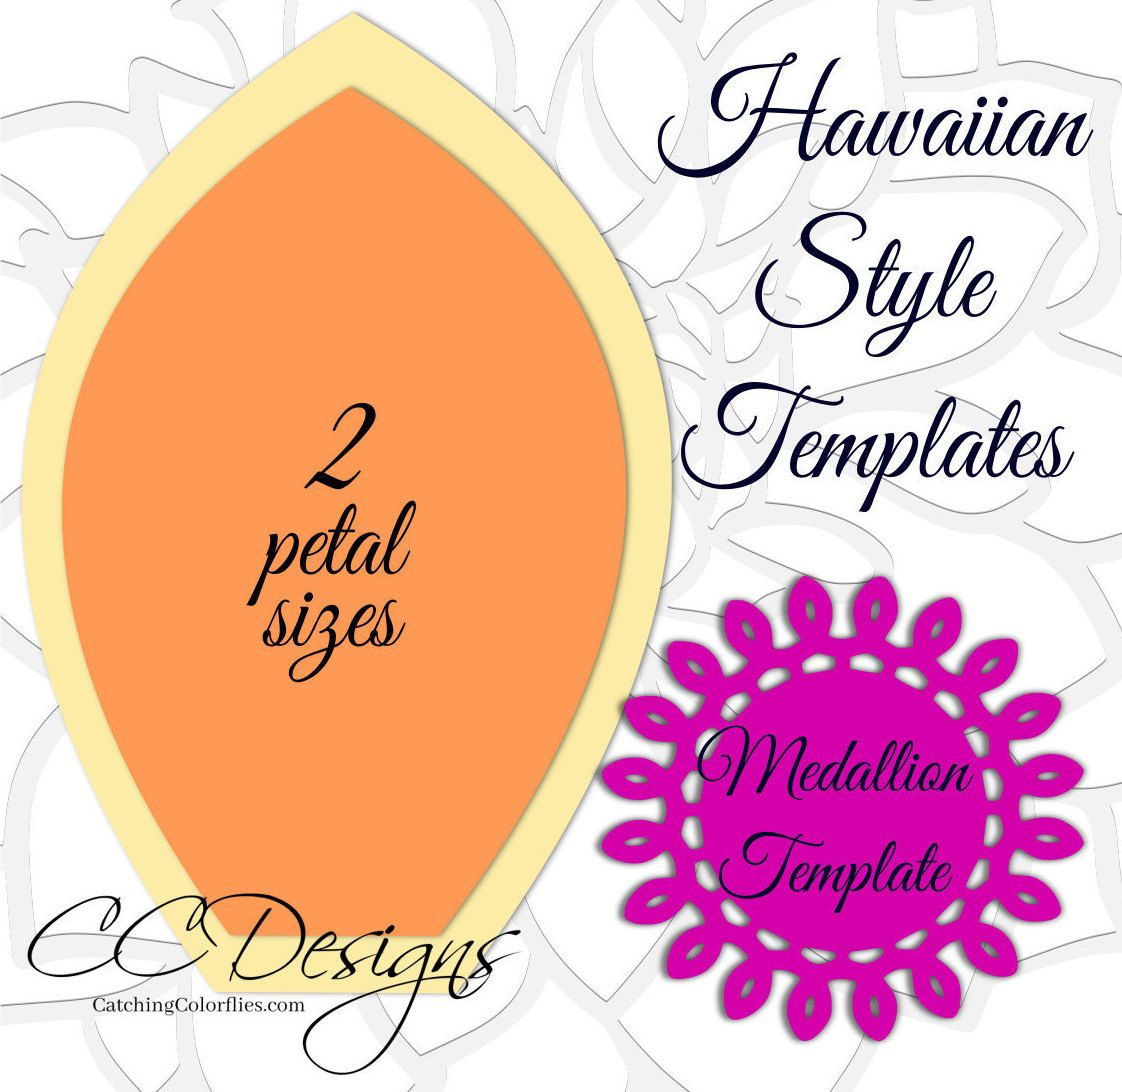 Giant hawaiian paper flower templates tutorial paper flower giant hawaiian paper flower templates tutorial paper flower izmirmasajfo